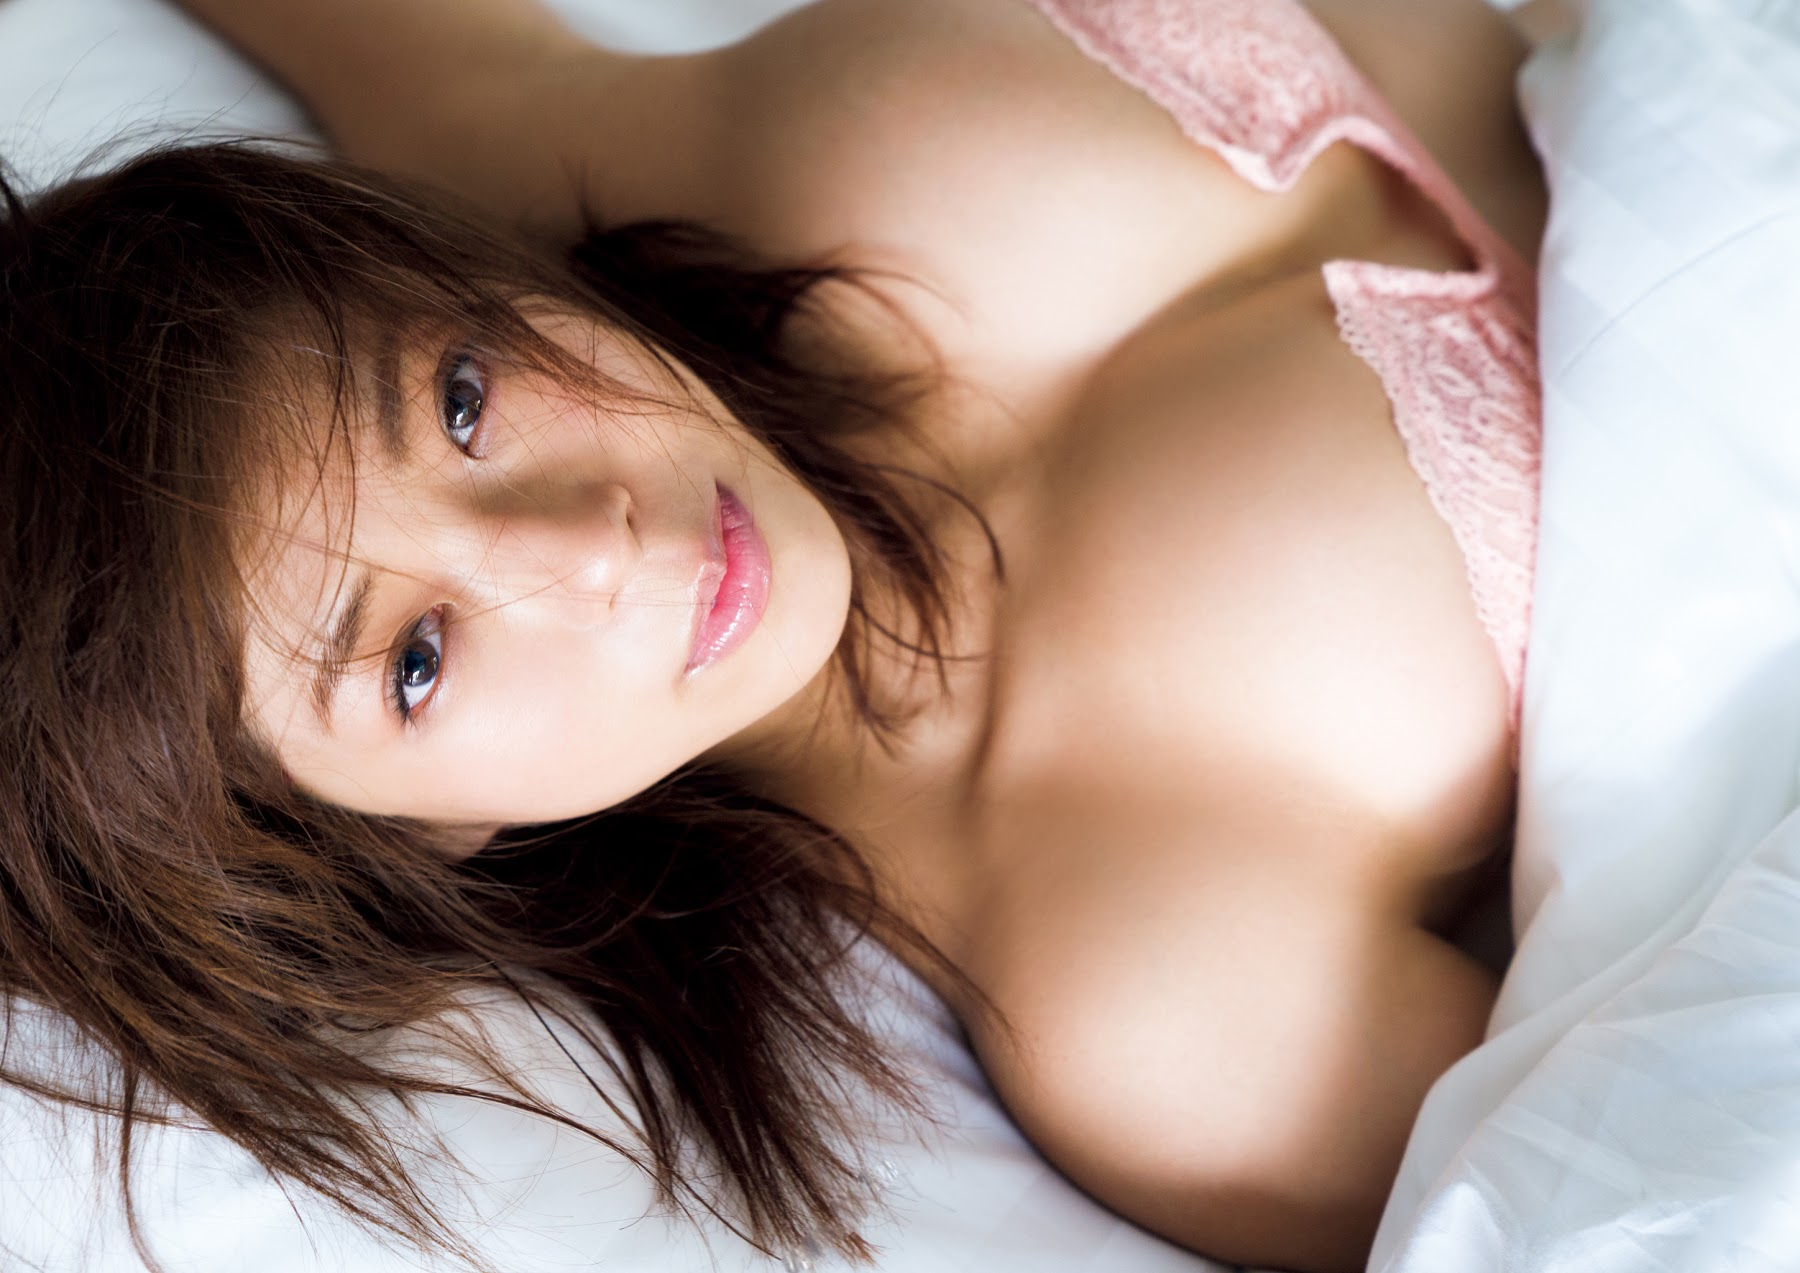 Super body of H cup Minami Wachi 2020 that exposes body and mind in tropical Thailand121